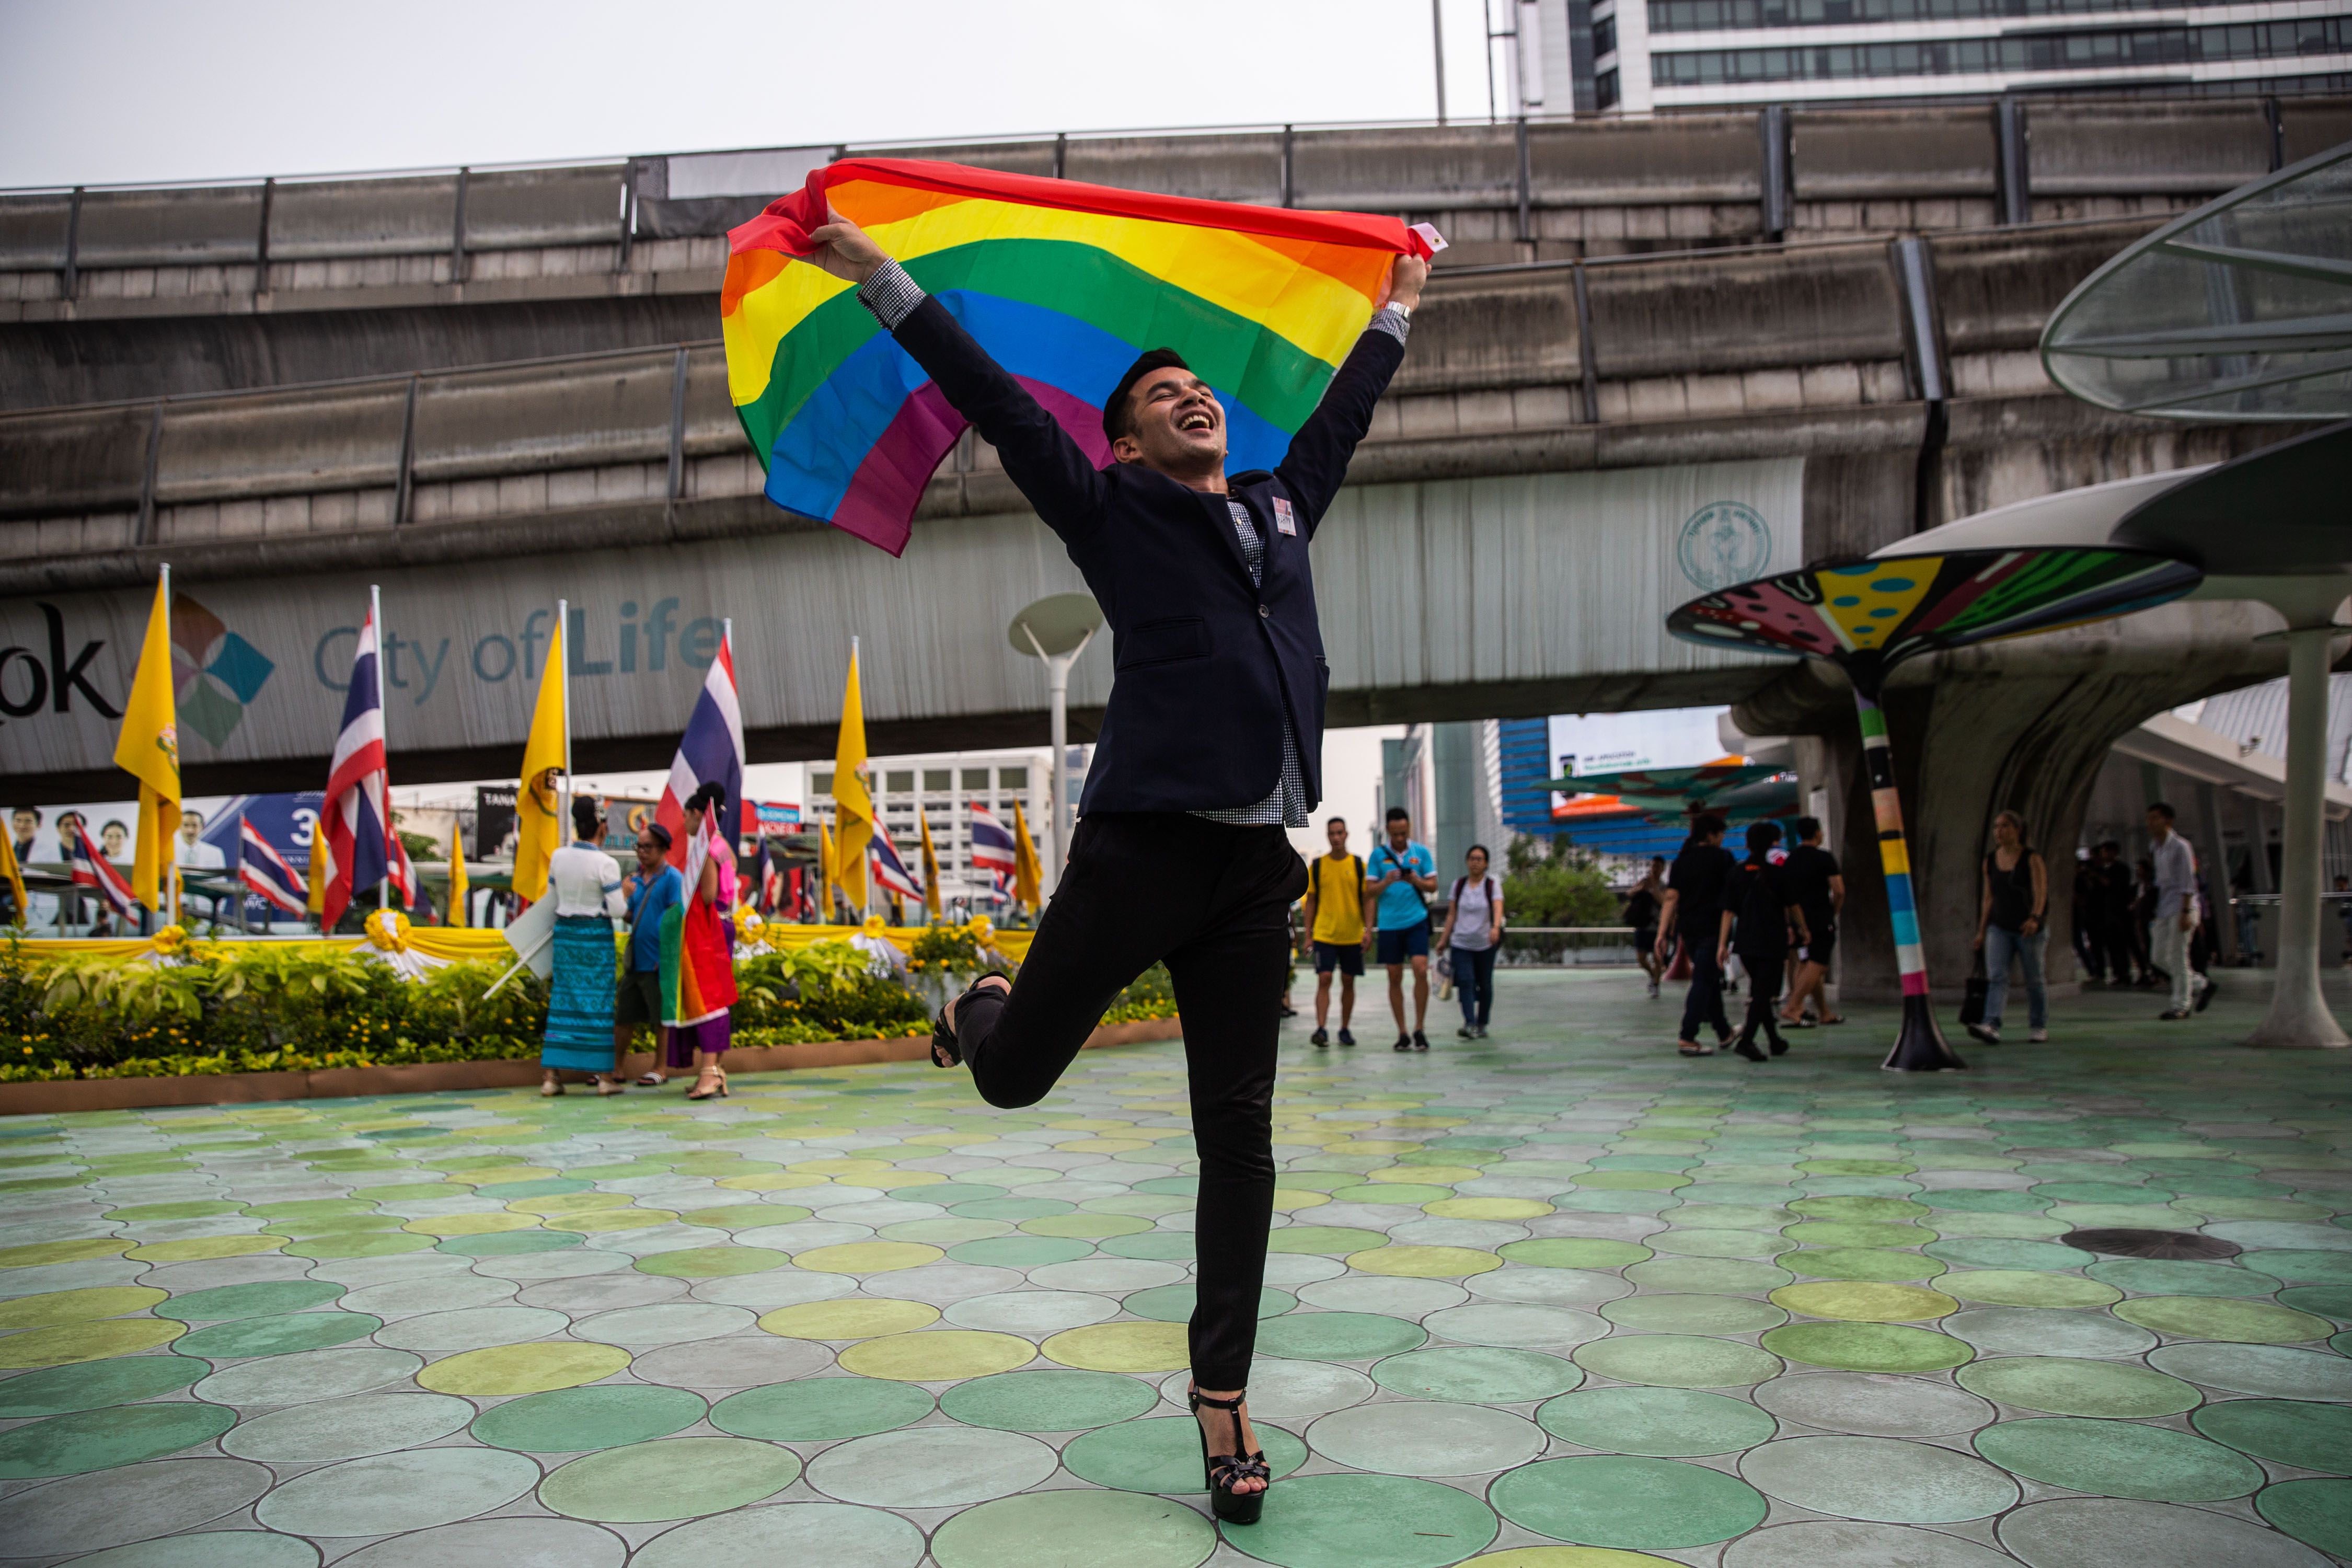 Thailand May Be First in Southeast Asia to Allow Same-Sex Unions